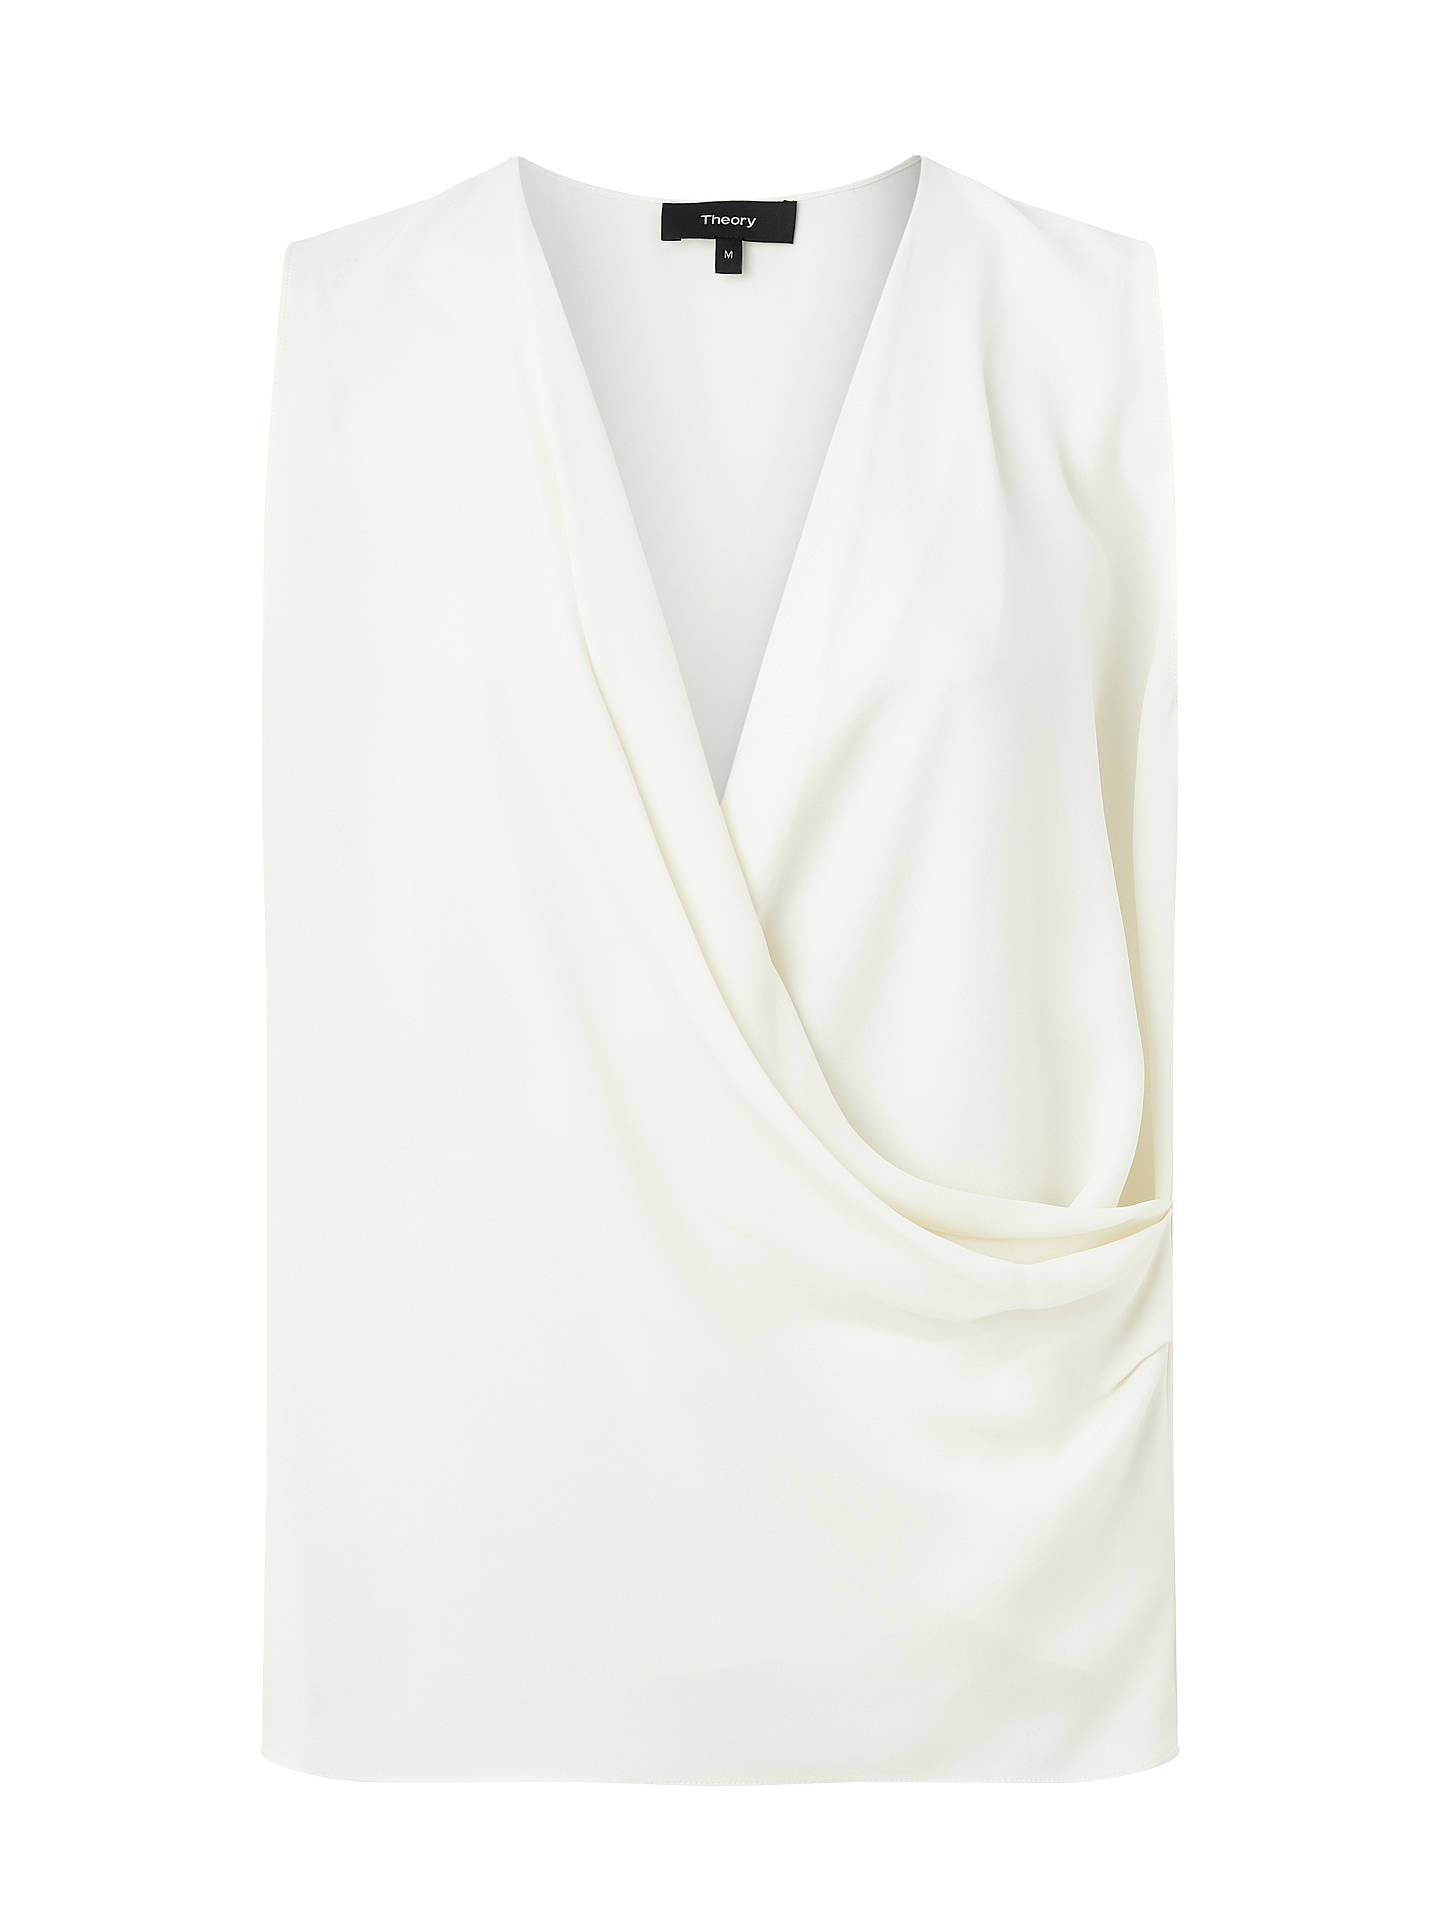 Buy Theory Draped Silk Shell Top, Ivory, XL Online at johnlewis.com